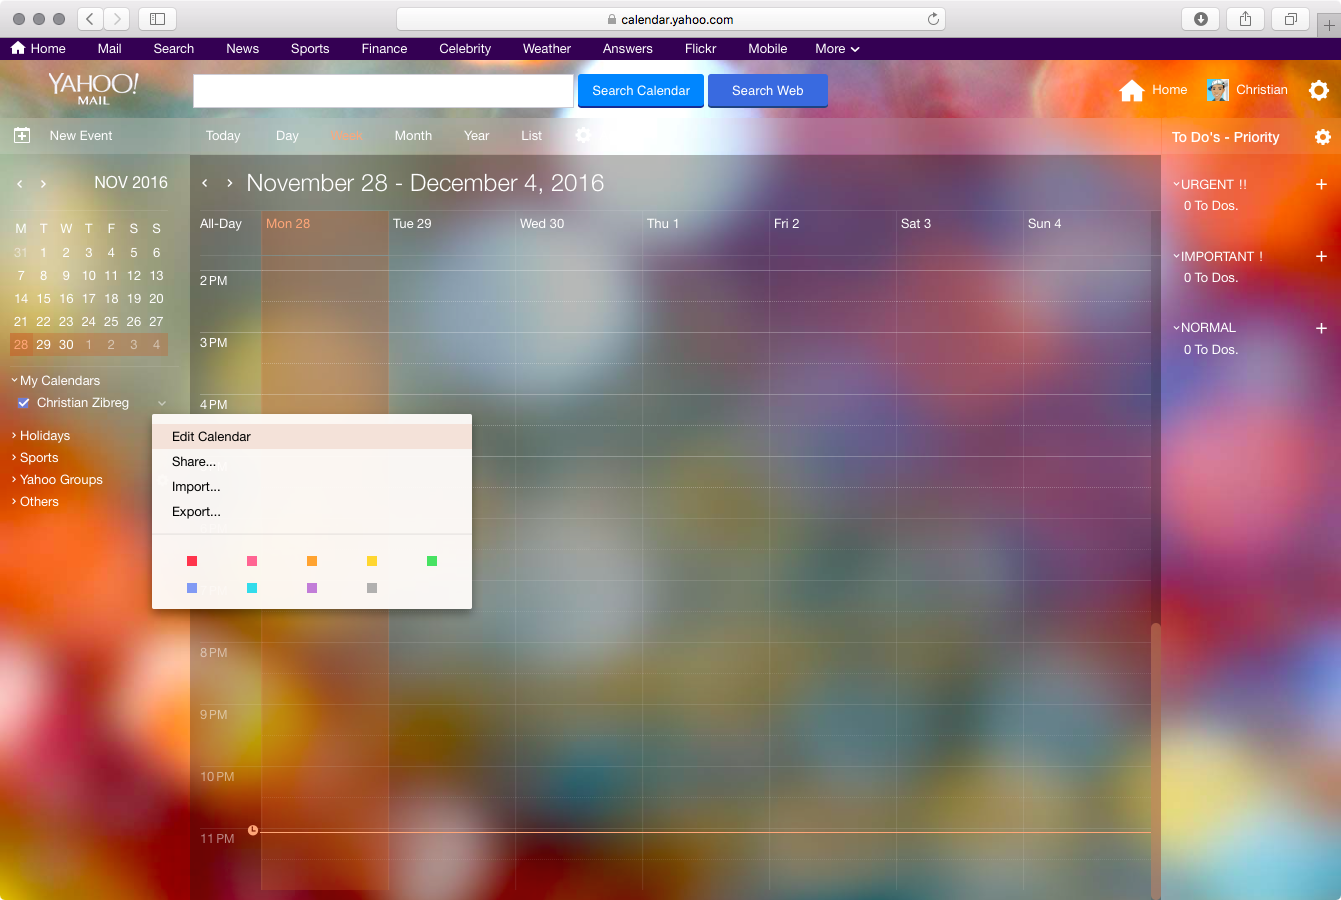 Yahoo Calendar export web screenshot 001